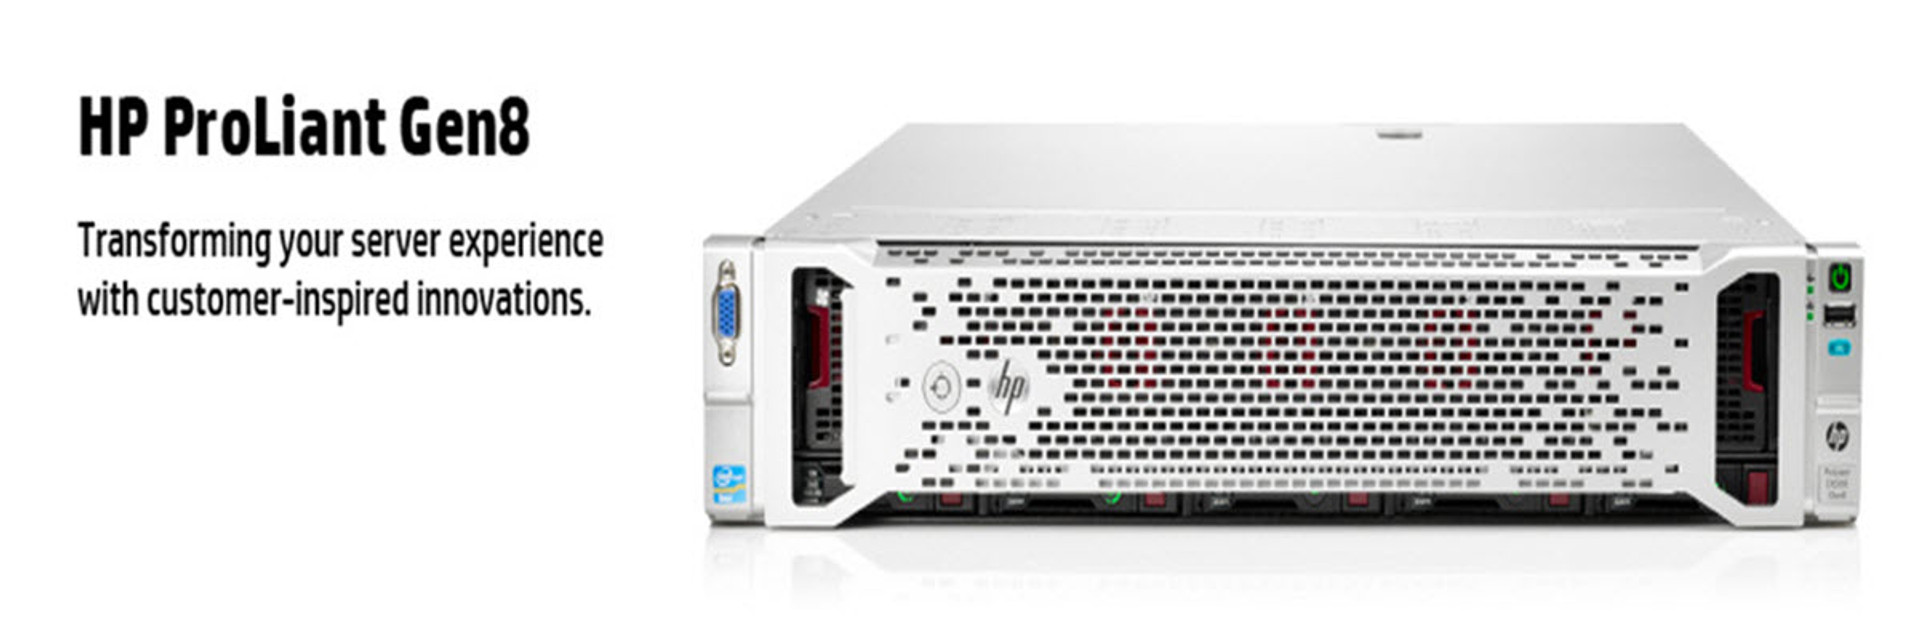 HP ProLiant Gen8 - Tramsforming your server experience with customer-inspired innovations